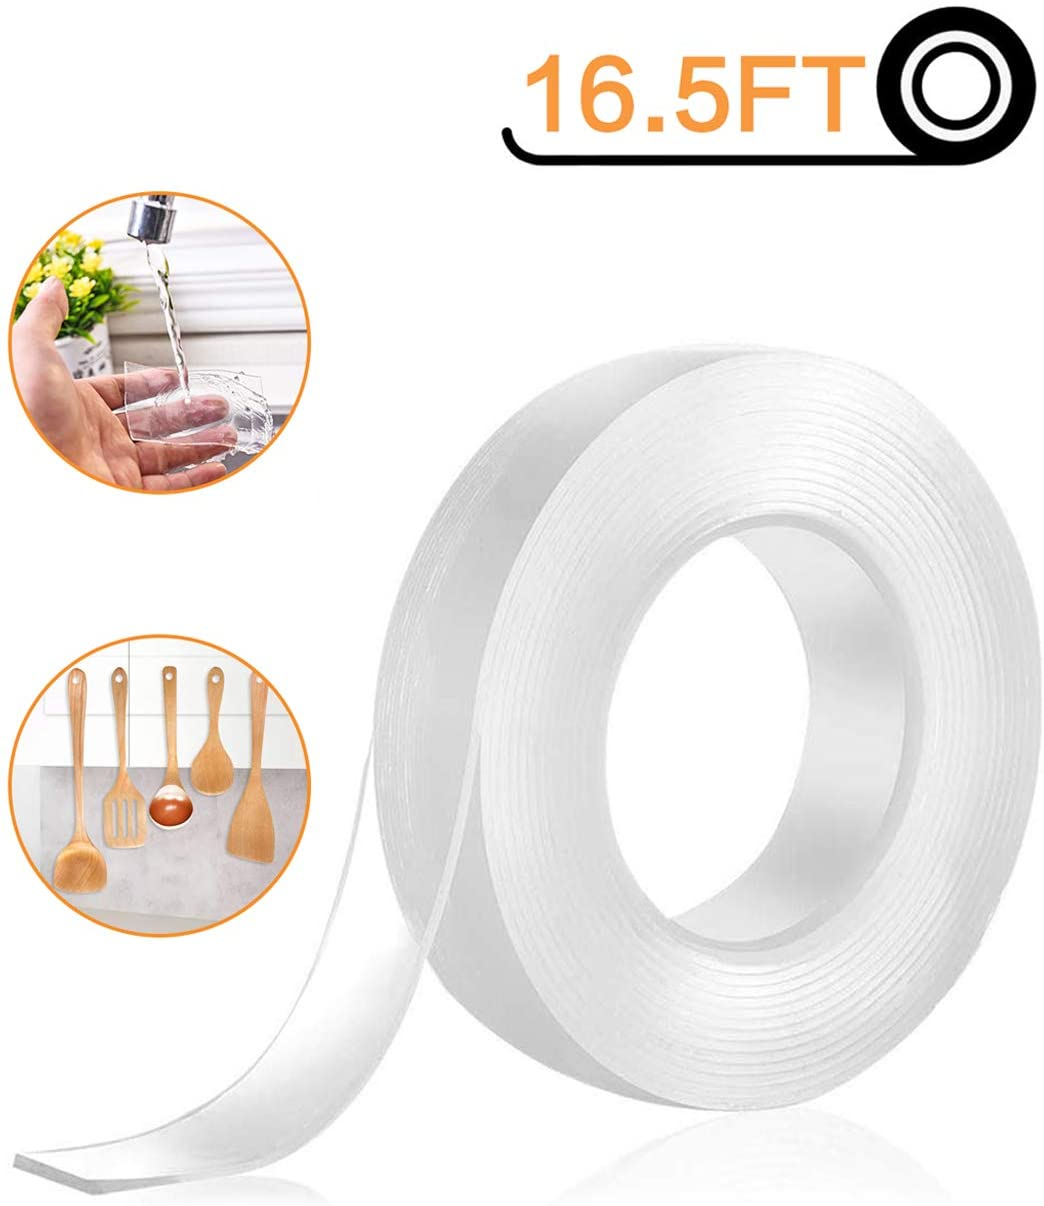 Nano Tape Double Sided Tape Heavy Duty - One Non-Slip Gel Grip Poster Tape Transparent Removable Washable Adhesive Sticky Rug Griper Mat Pads for Mounting Carpet - 16.5